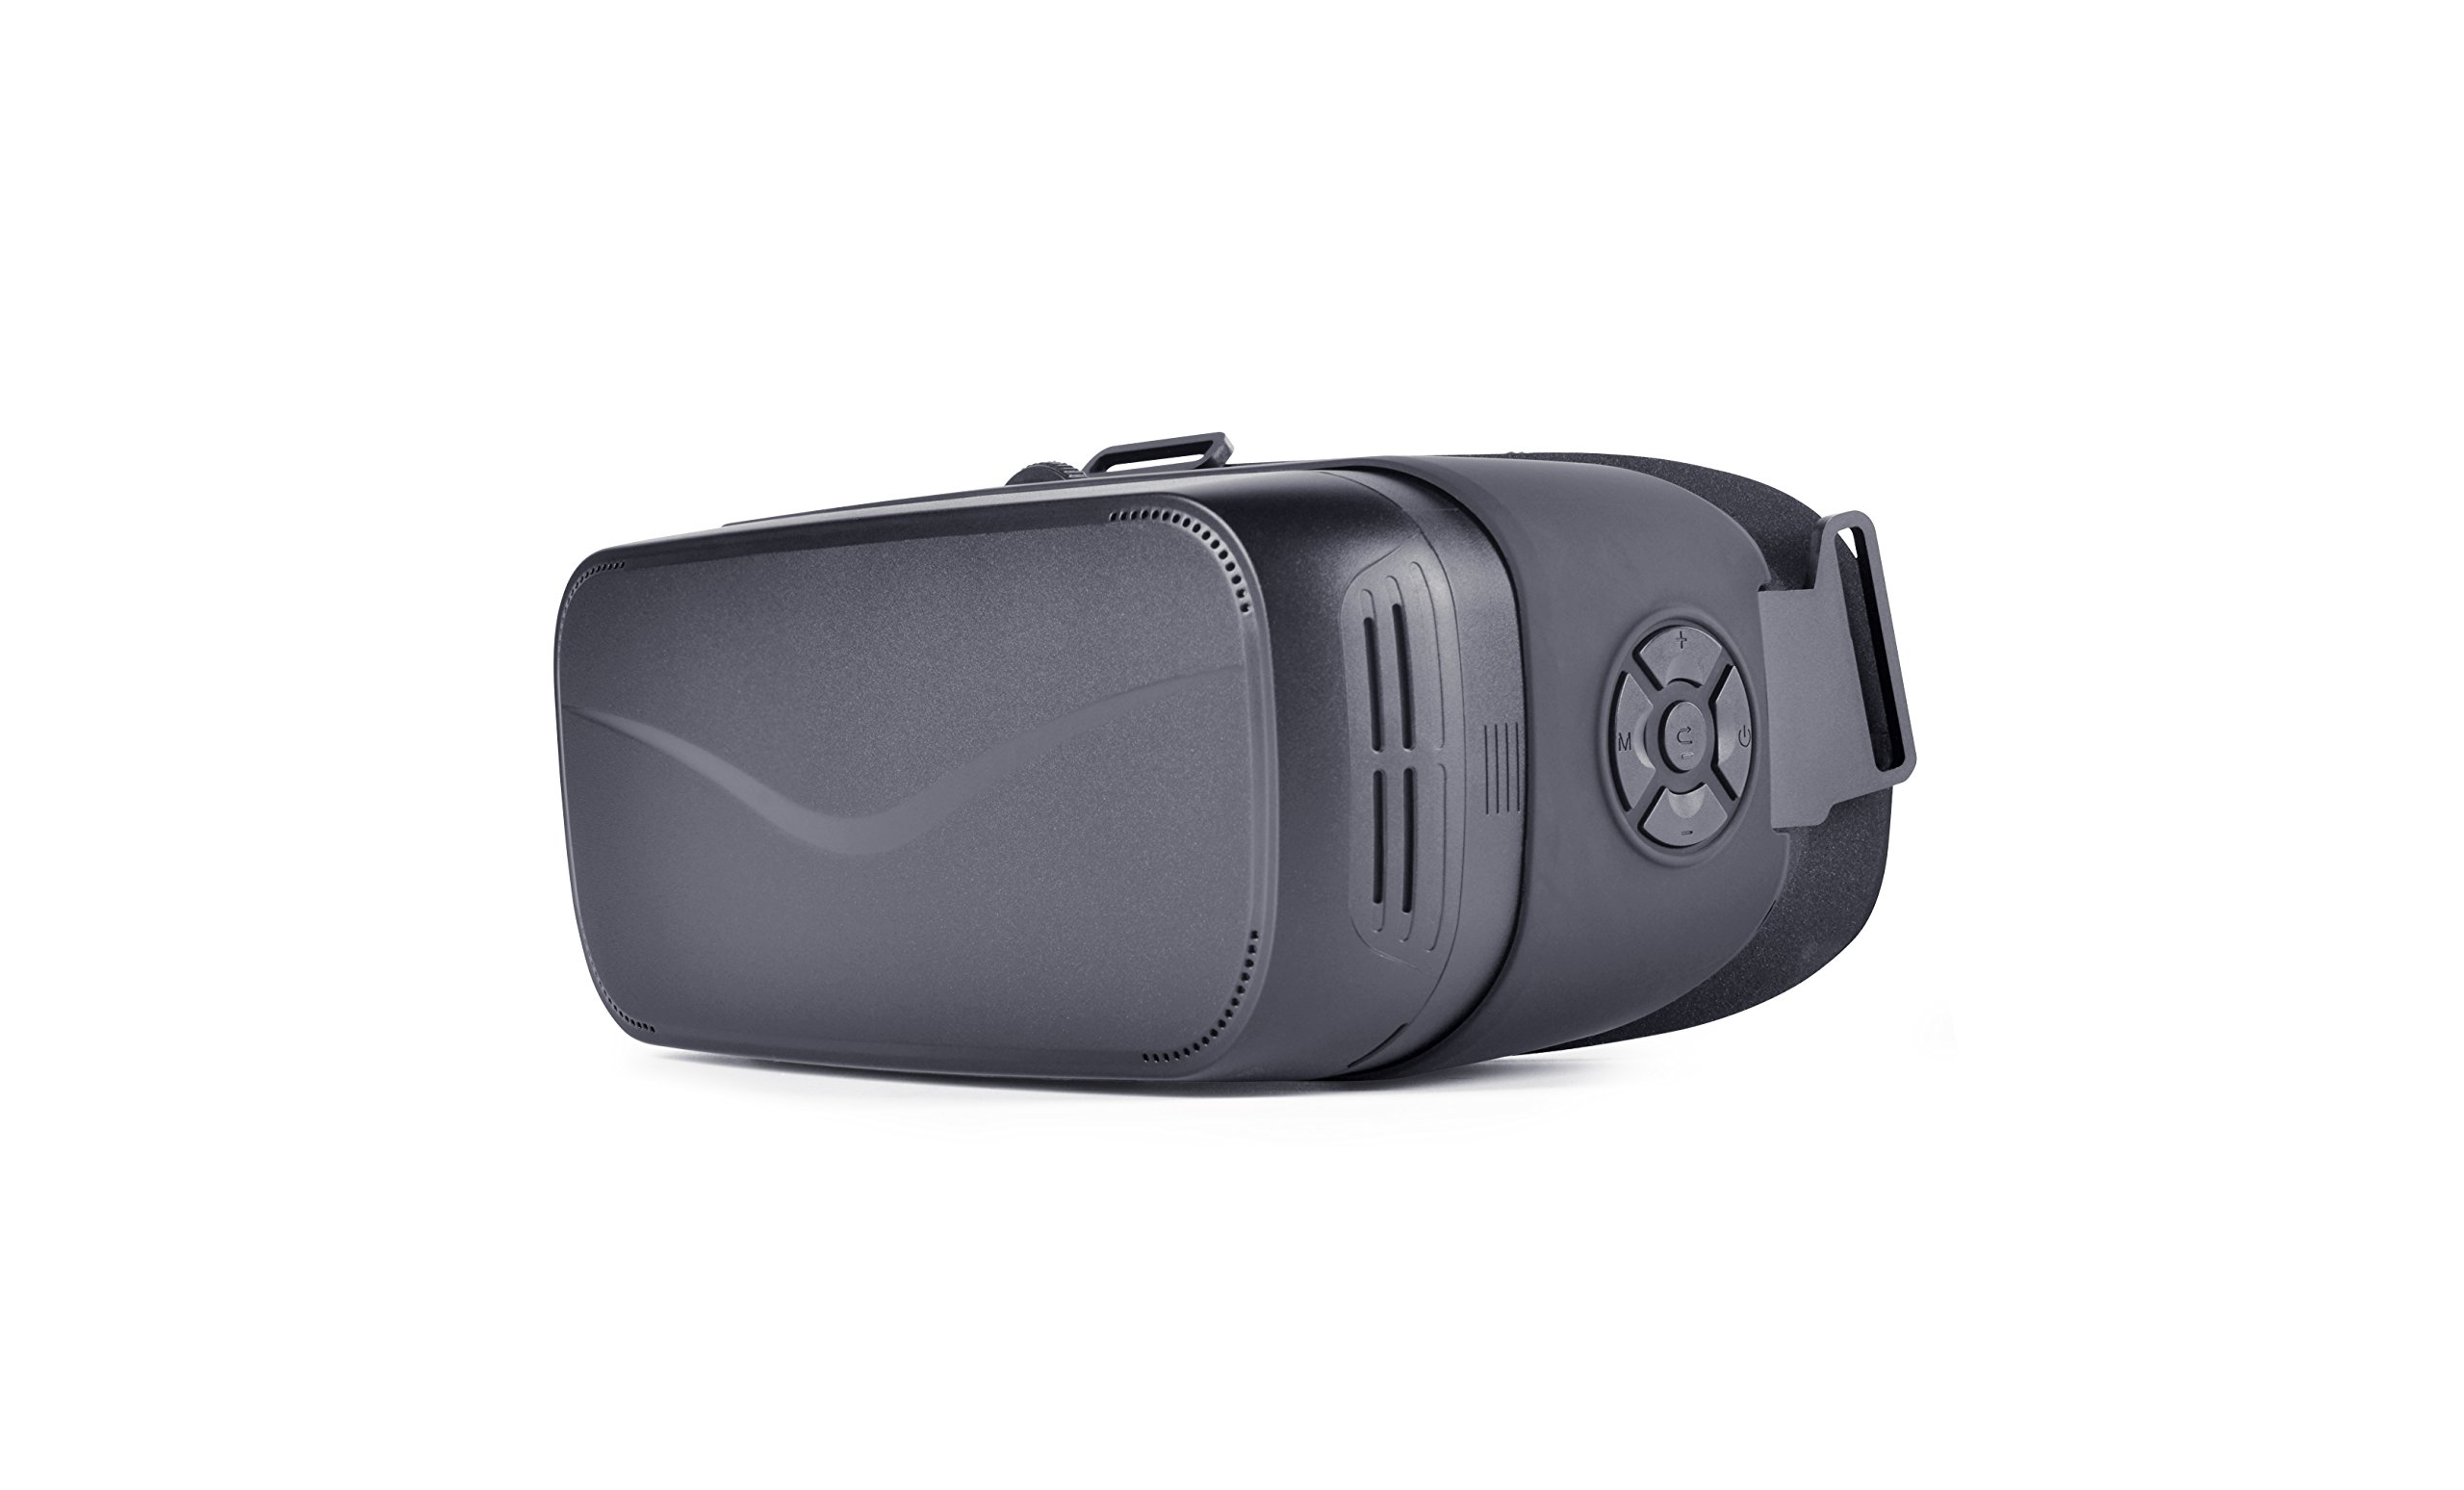 RtTech VR9 VR Headset Standalone, 3D VR Glasses Virtual Reality All in One with Built-in 5.5 inch Full HD 2K 2560P Screen Android 6.0 System for YouTube, Google Play, Games, 360° Immersive Theater